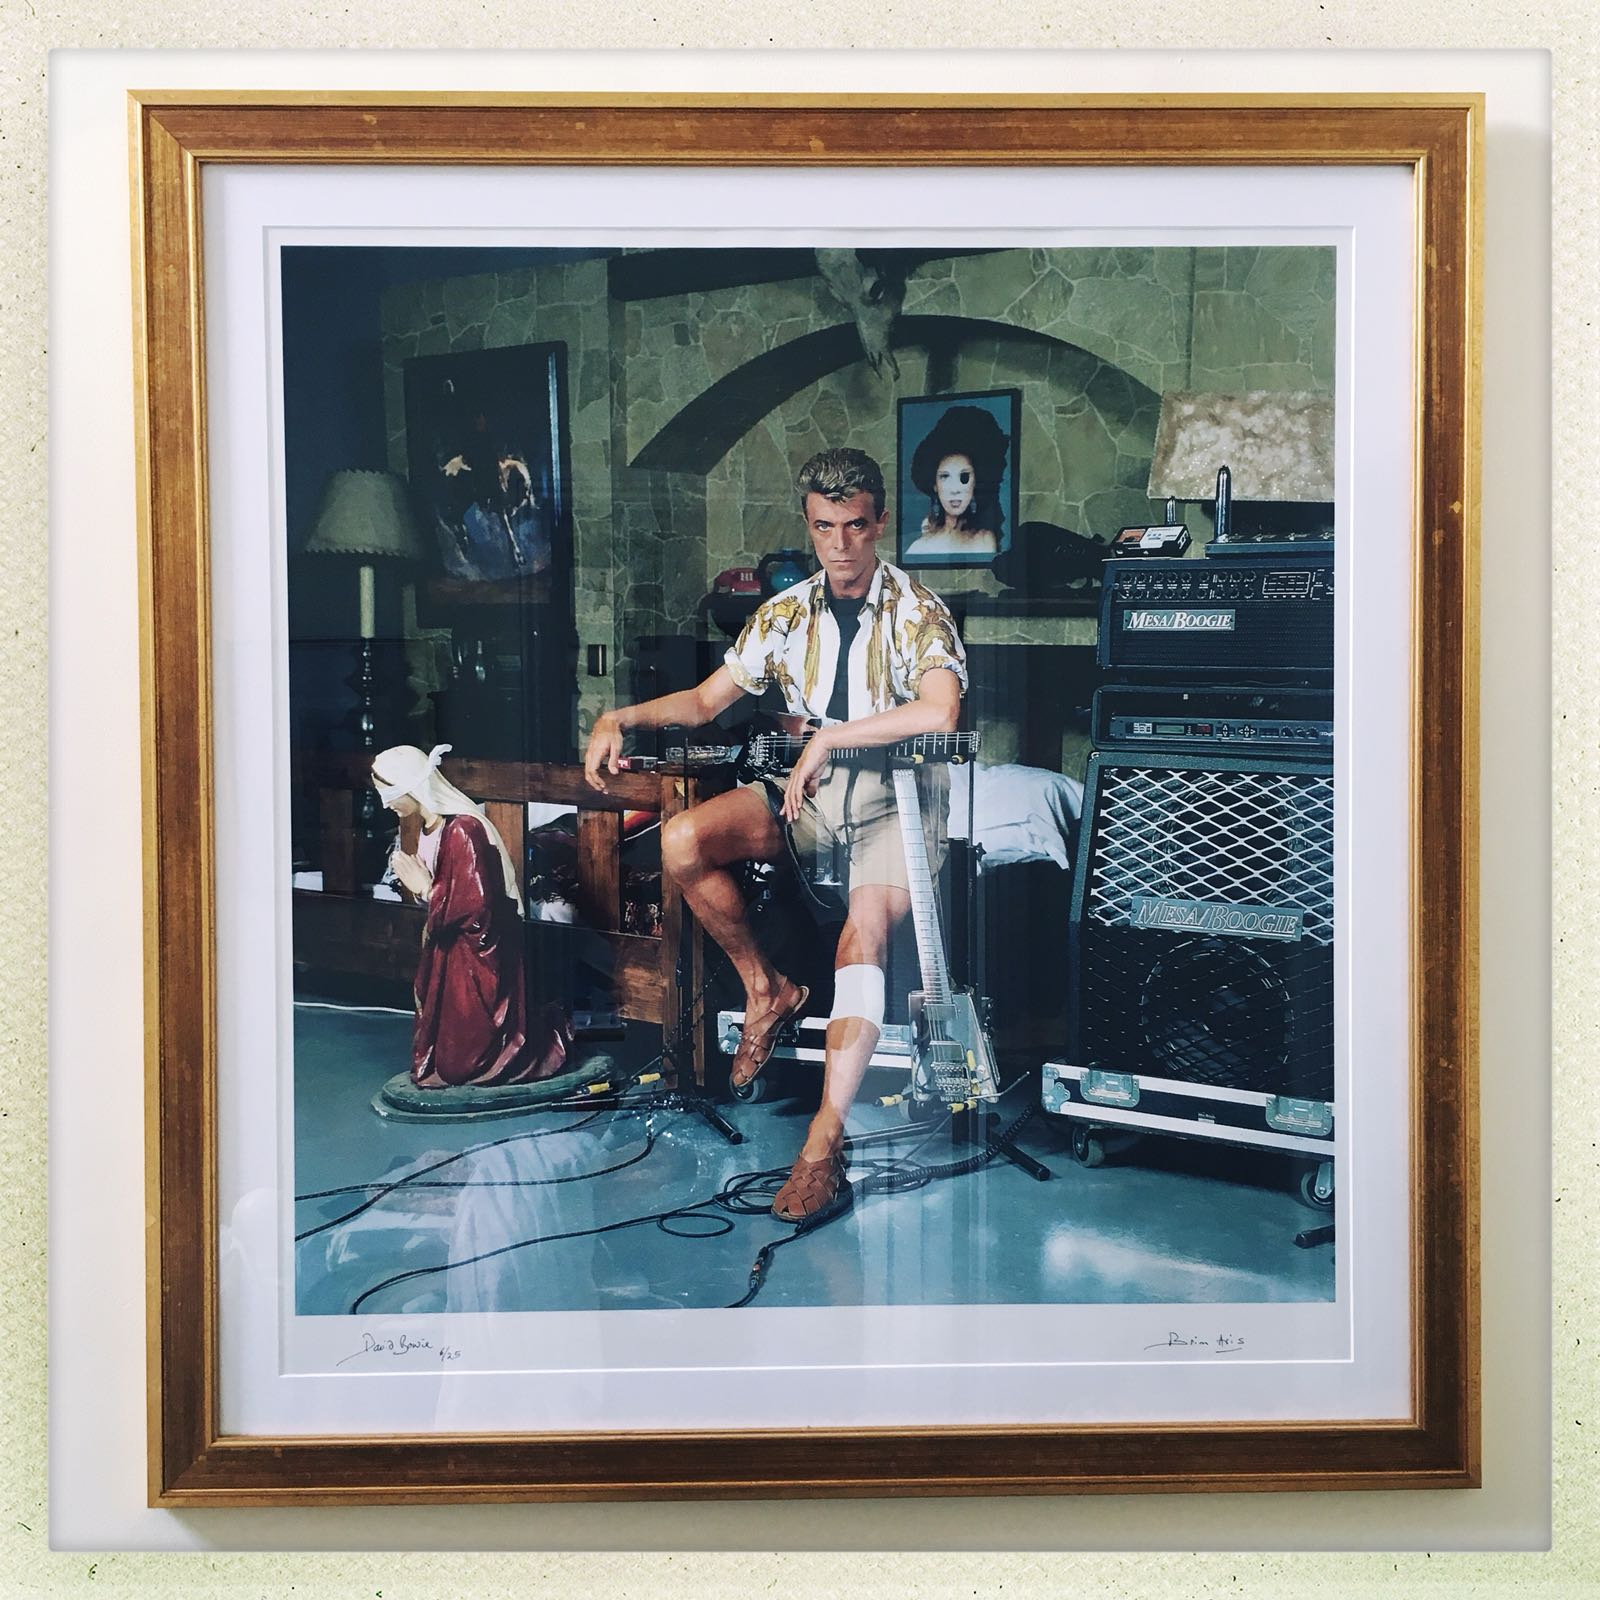 Limited edition lambda c-type framed print of David Bowie - 6 of 25 - photographed in 1991 - 30' x 30' C-Type Lambda high quality print, limited ed. 6 of 25Set in neutral mount with aged 'luxe' gold frame.Framed price excluding delivery: £1,450.00